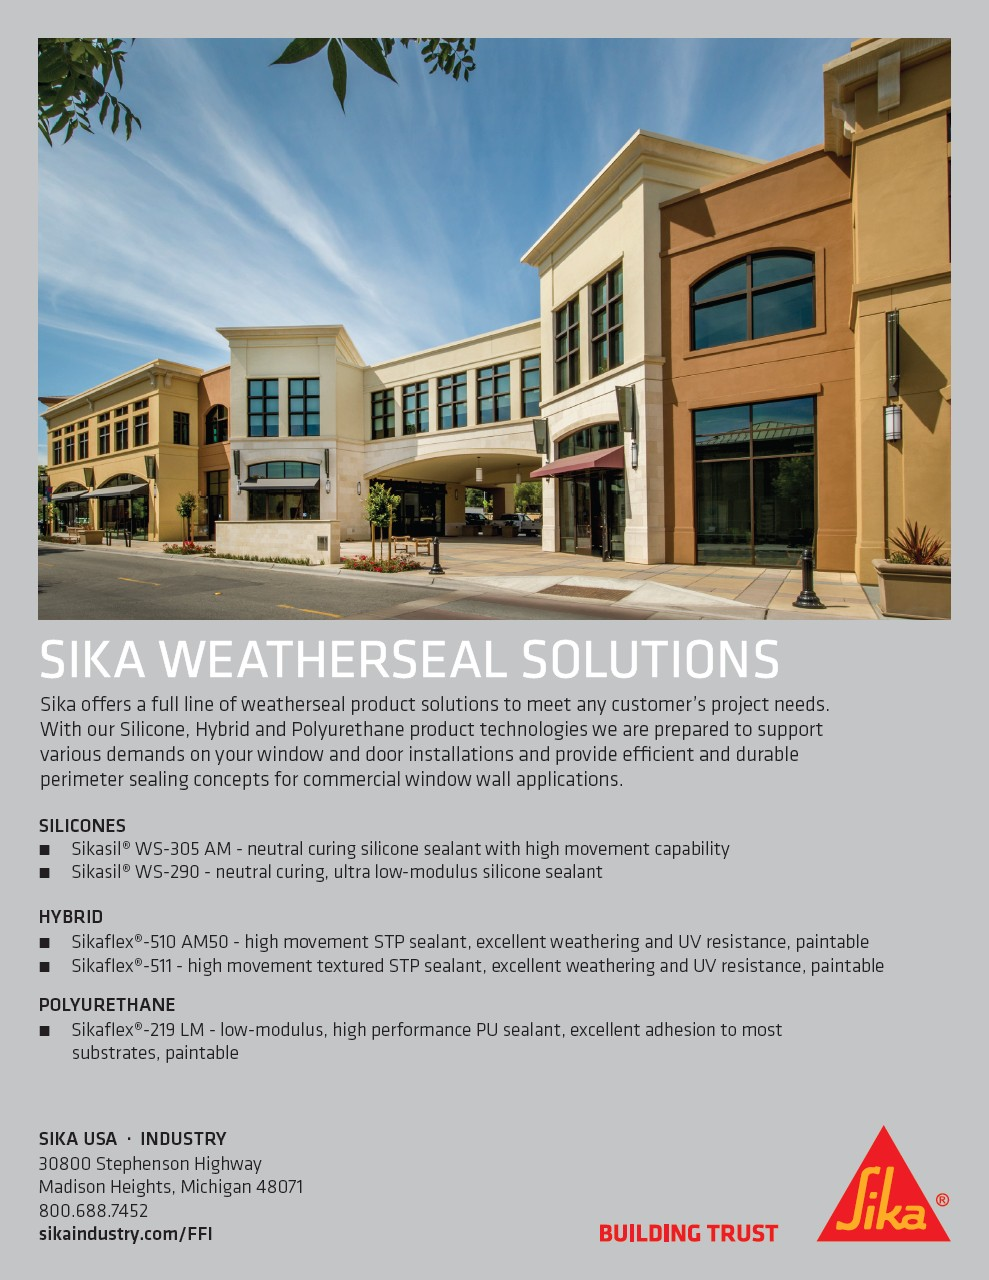 Sika Weatherseal Solutions